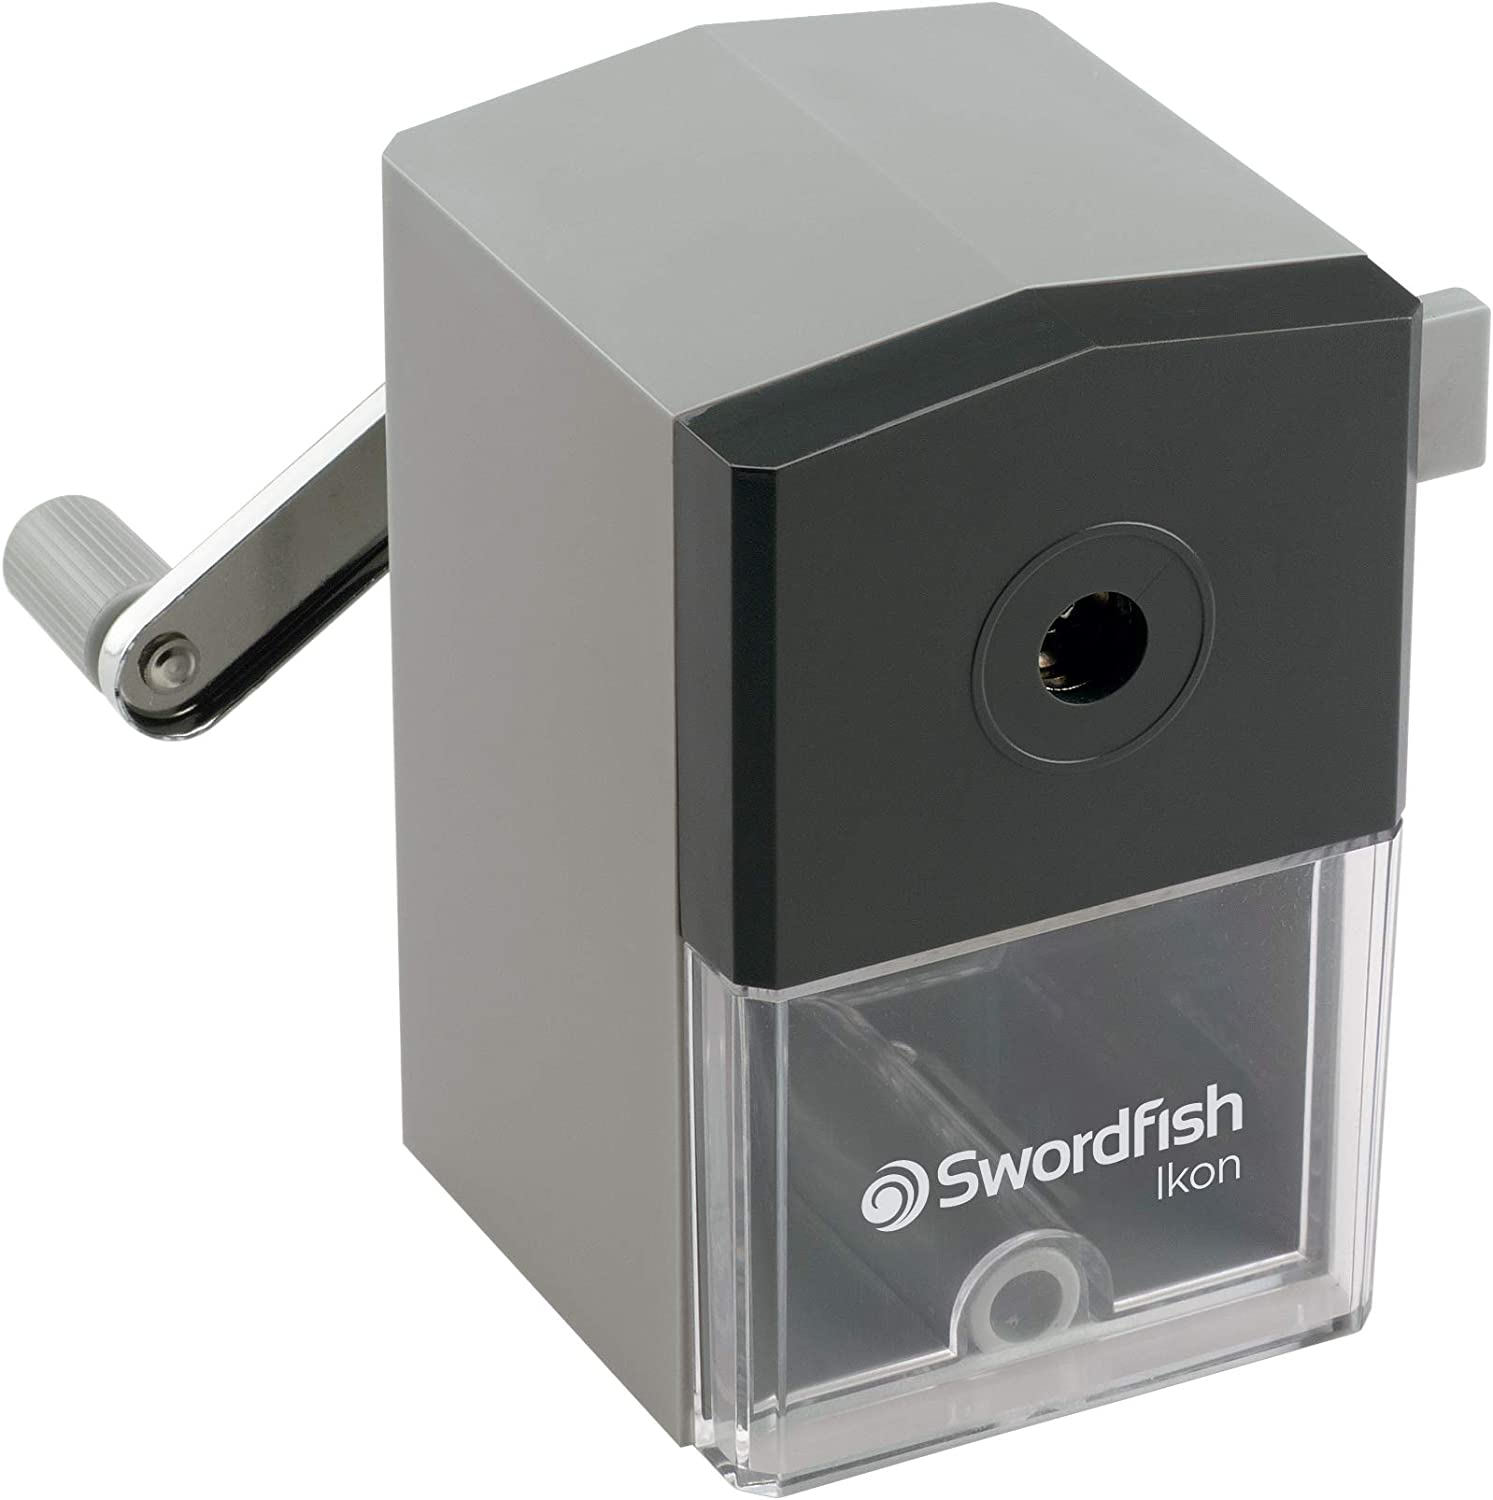 Swordfish 40100 Ikon Desktop Manual Pencil Sharpener